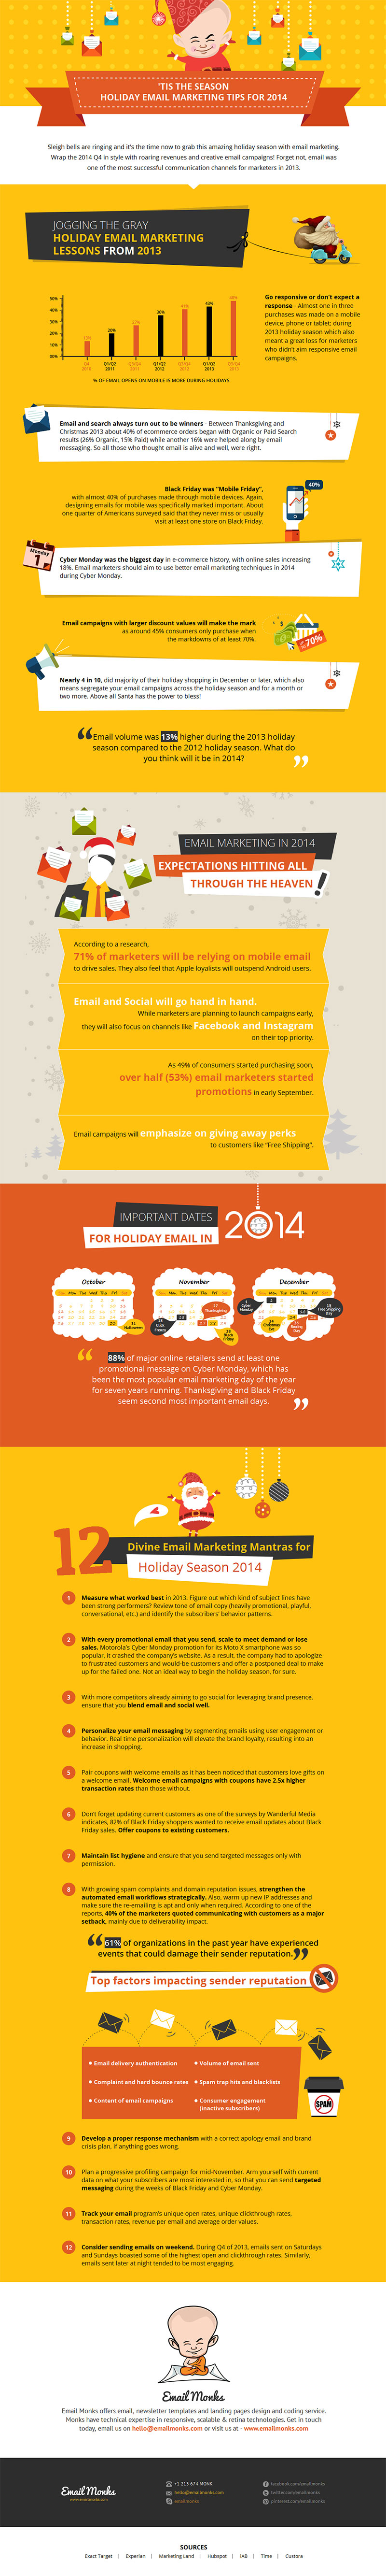 Is your Email Marketing ready for the Holiday Season? (Infographic)